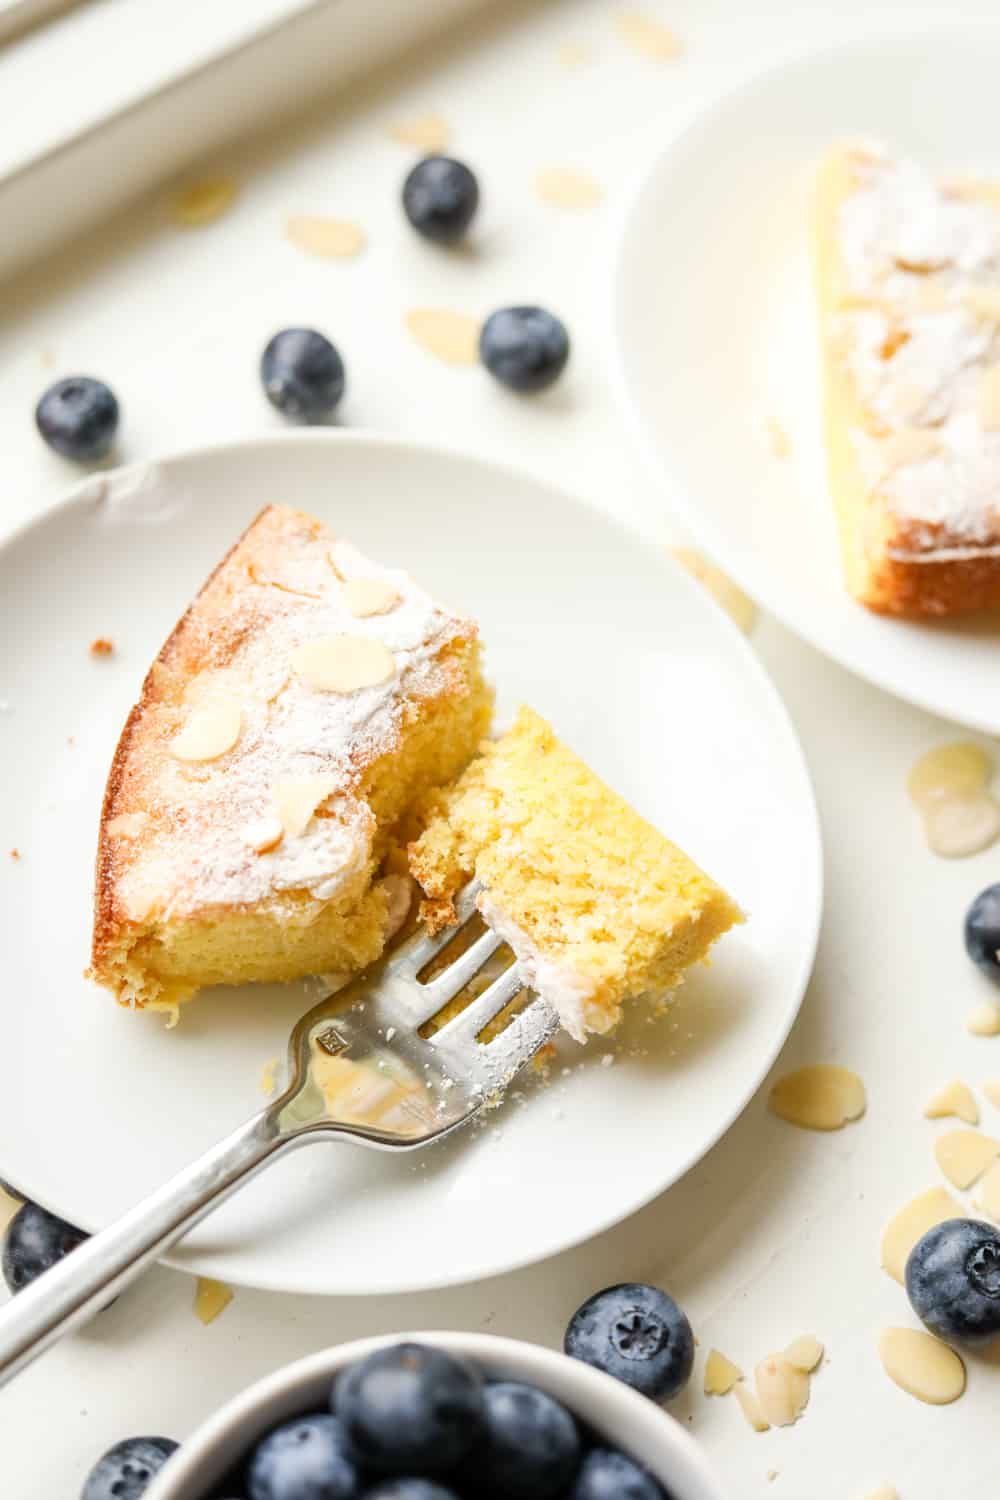 A slice of almond cake on a white plate, and a fork is holding a piece of the cake. There's a cup of blueberries next to the plate as well as some loose ones.